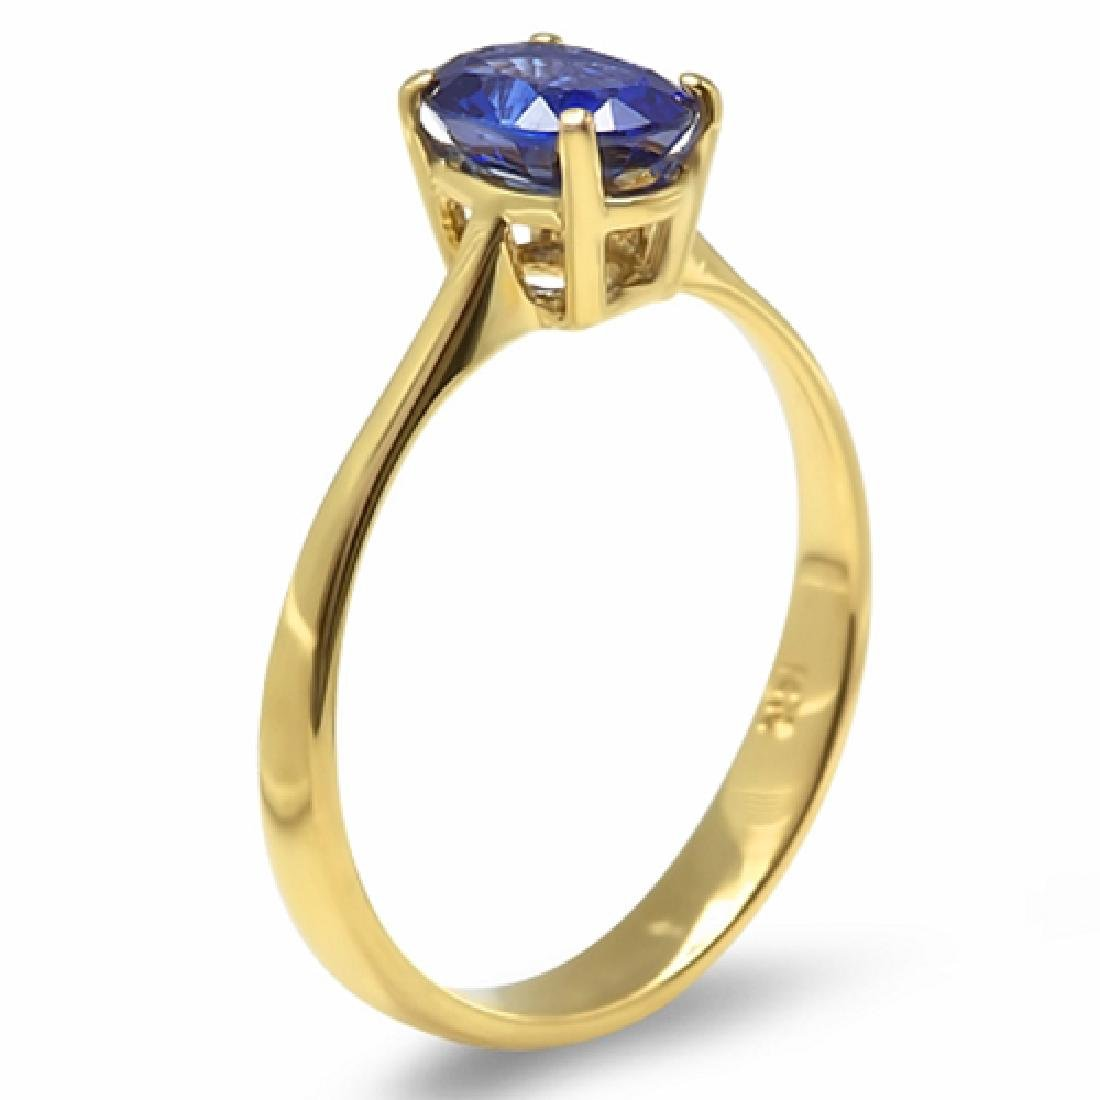 1.20 Carat Natural Sapphire 18K Solid Yellow Gold Ring - 2